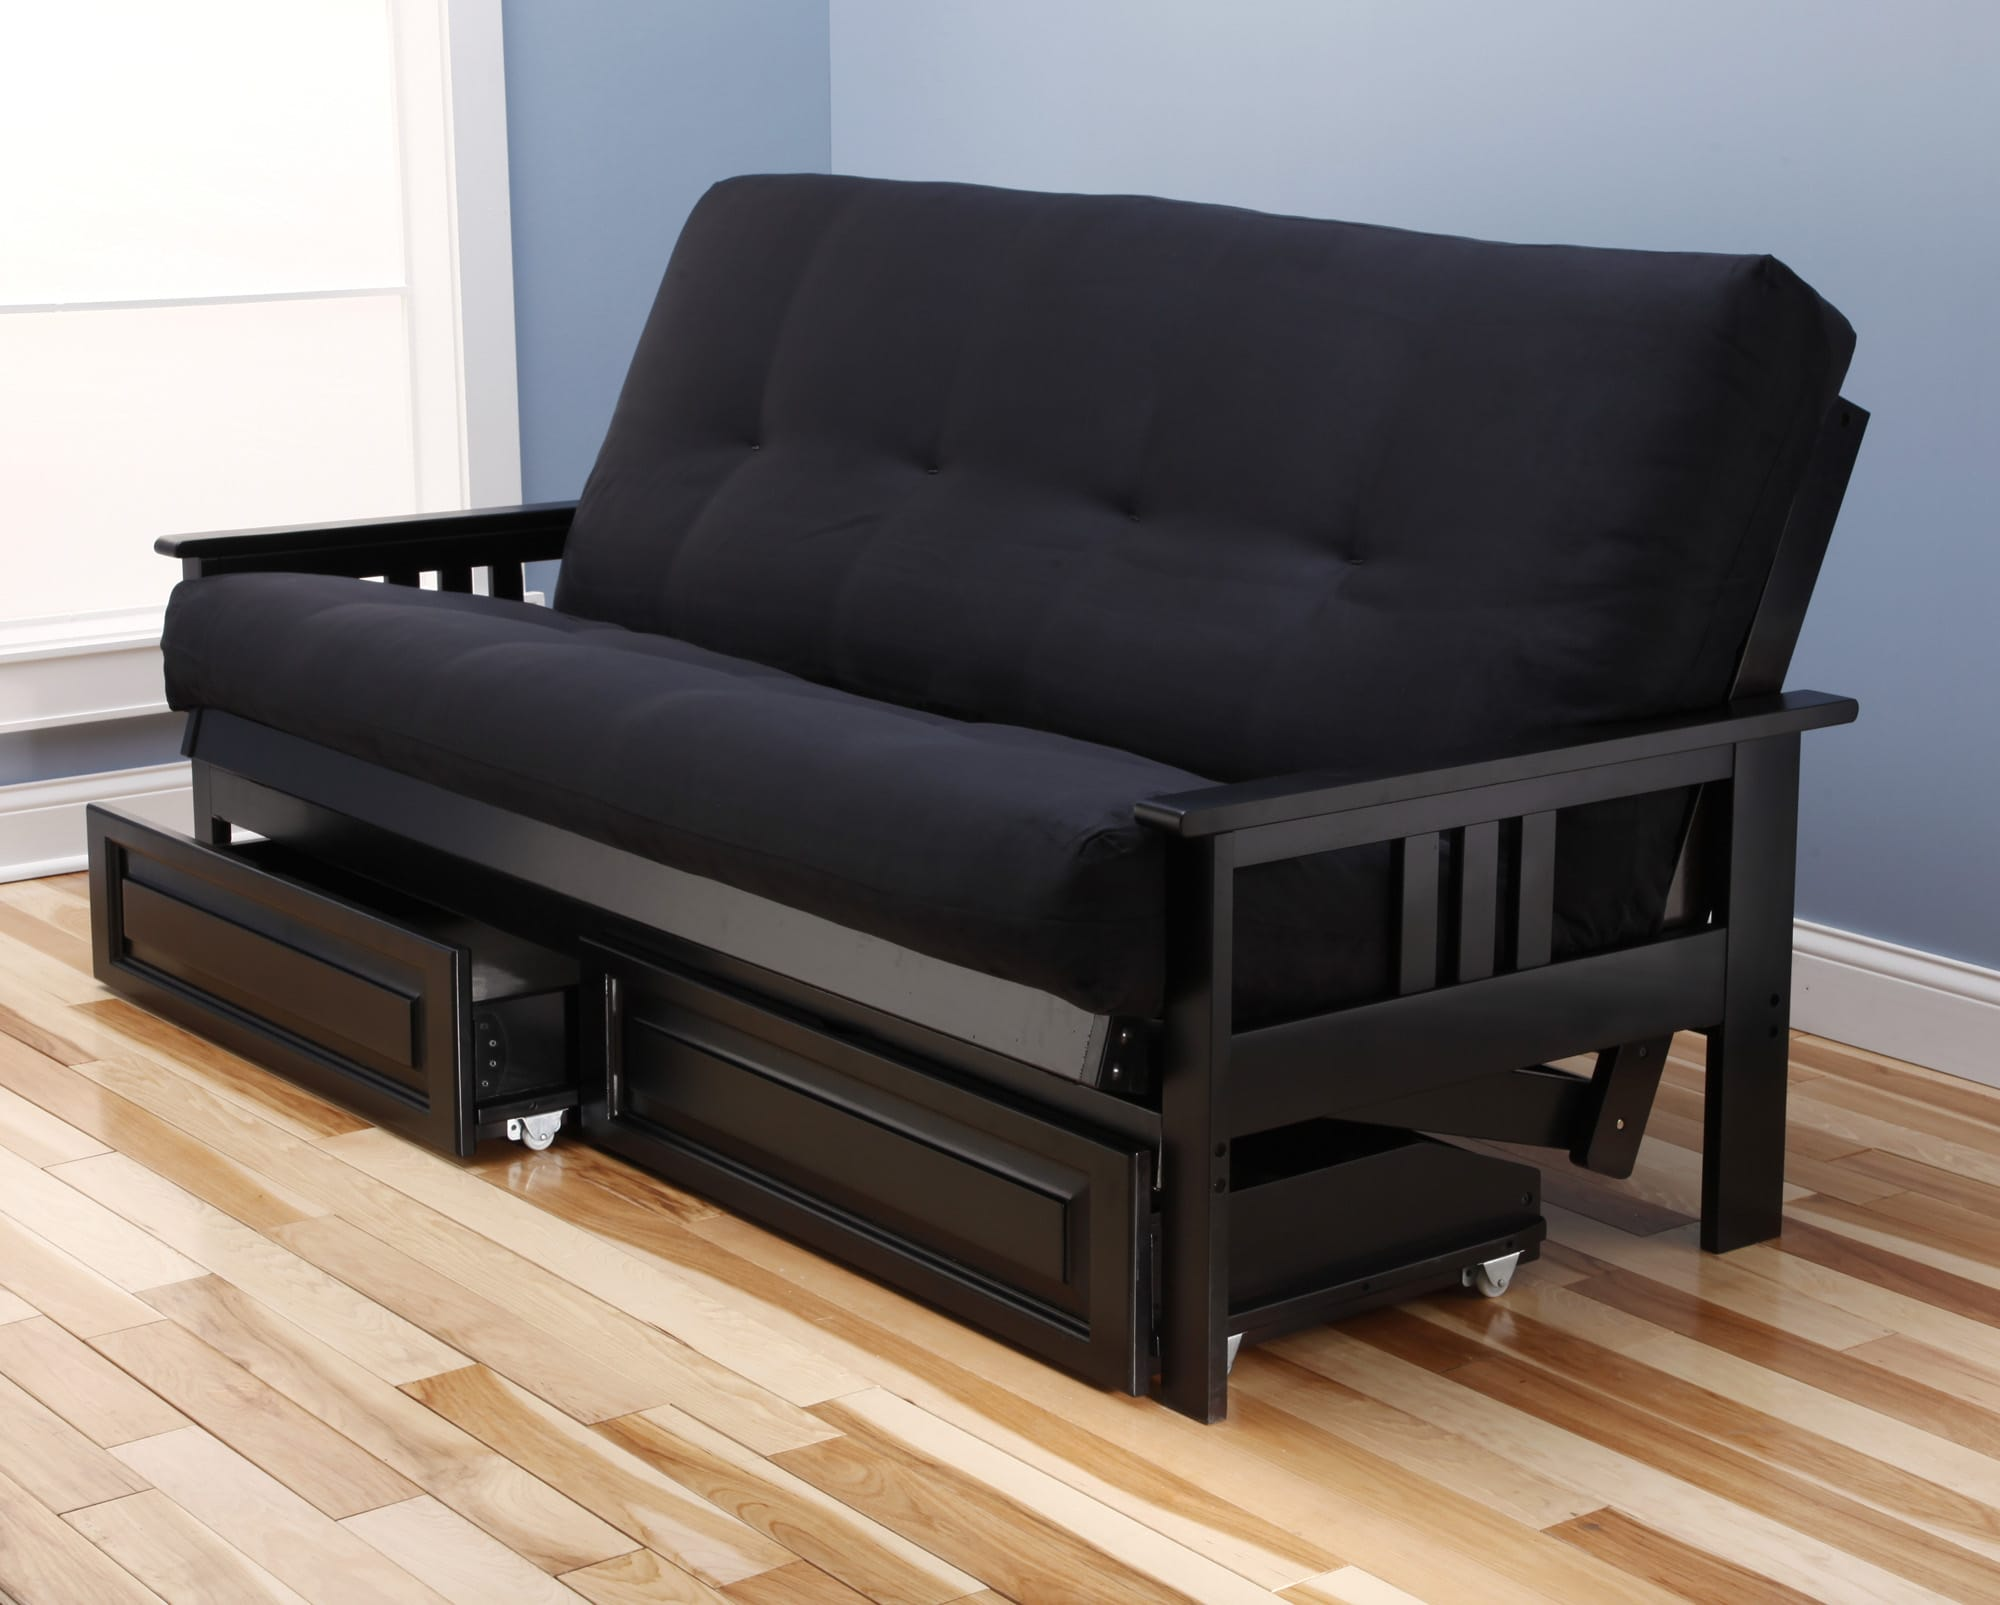 monterey futon frame black by kodiak